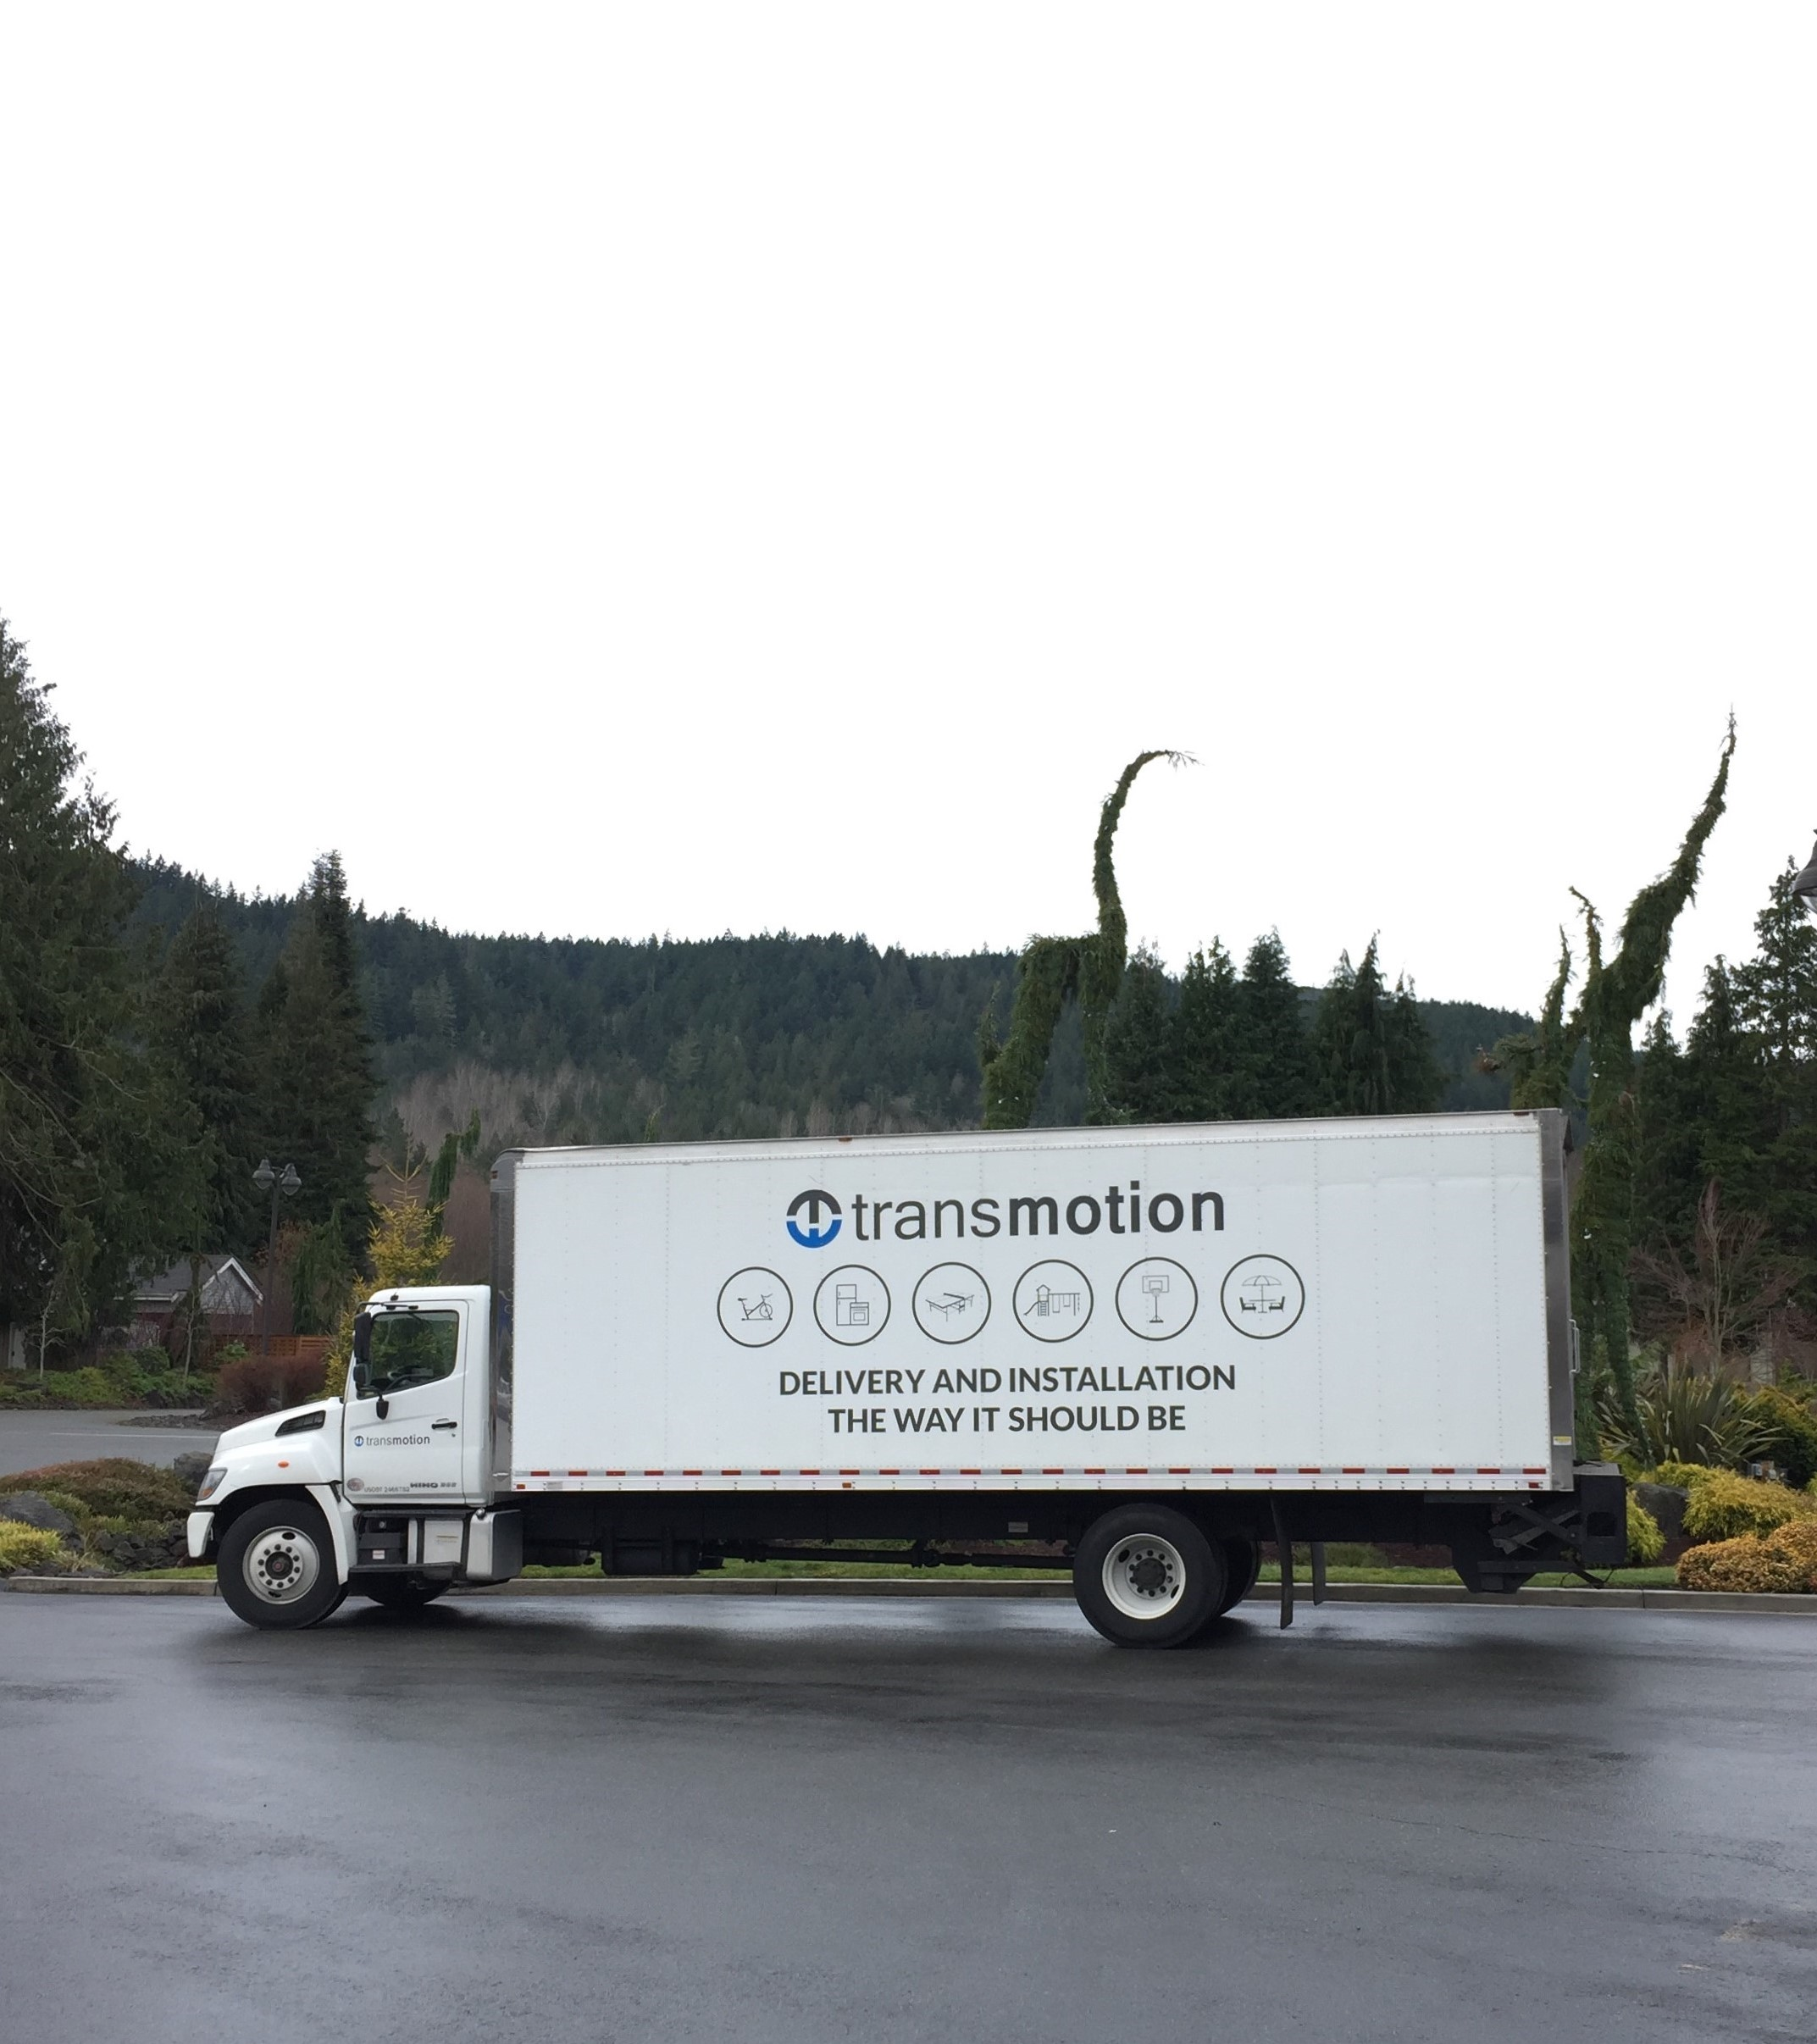 Transmotion Delivery Assembly Installation Relocation Extraction Removal Chicago IL Michigan Indiana Washington California Local Near me Downers Grove Illinois La-Z-Boy Port Ludlow Washington Amy Premier Loveseat and Amy Premier Sofa